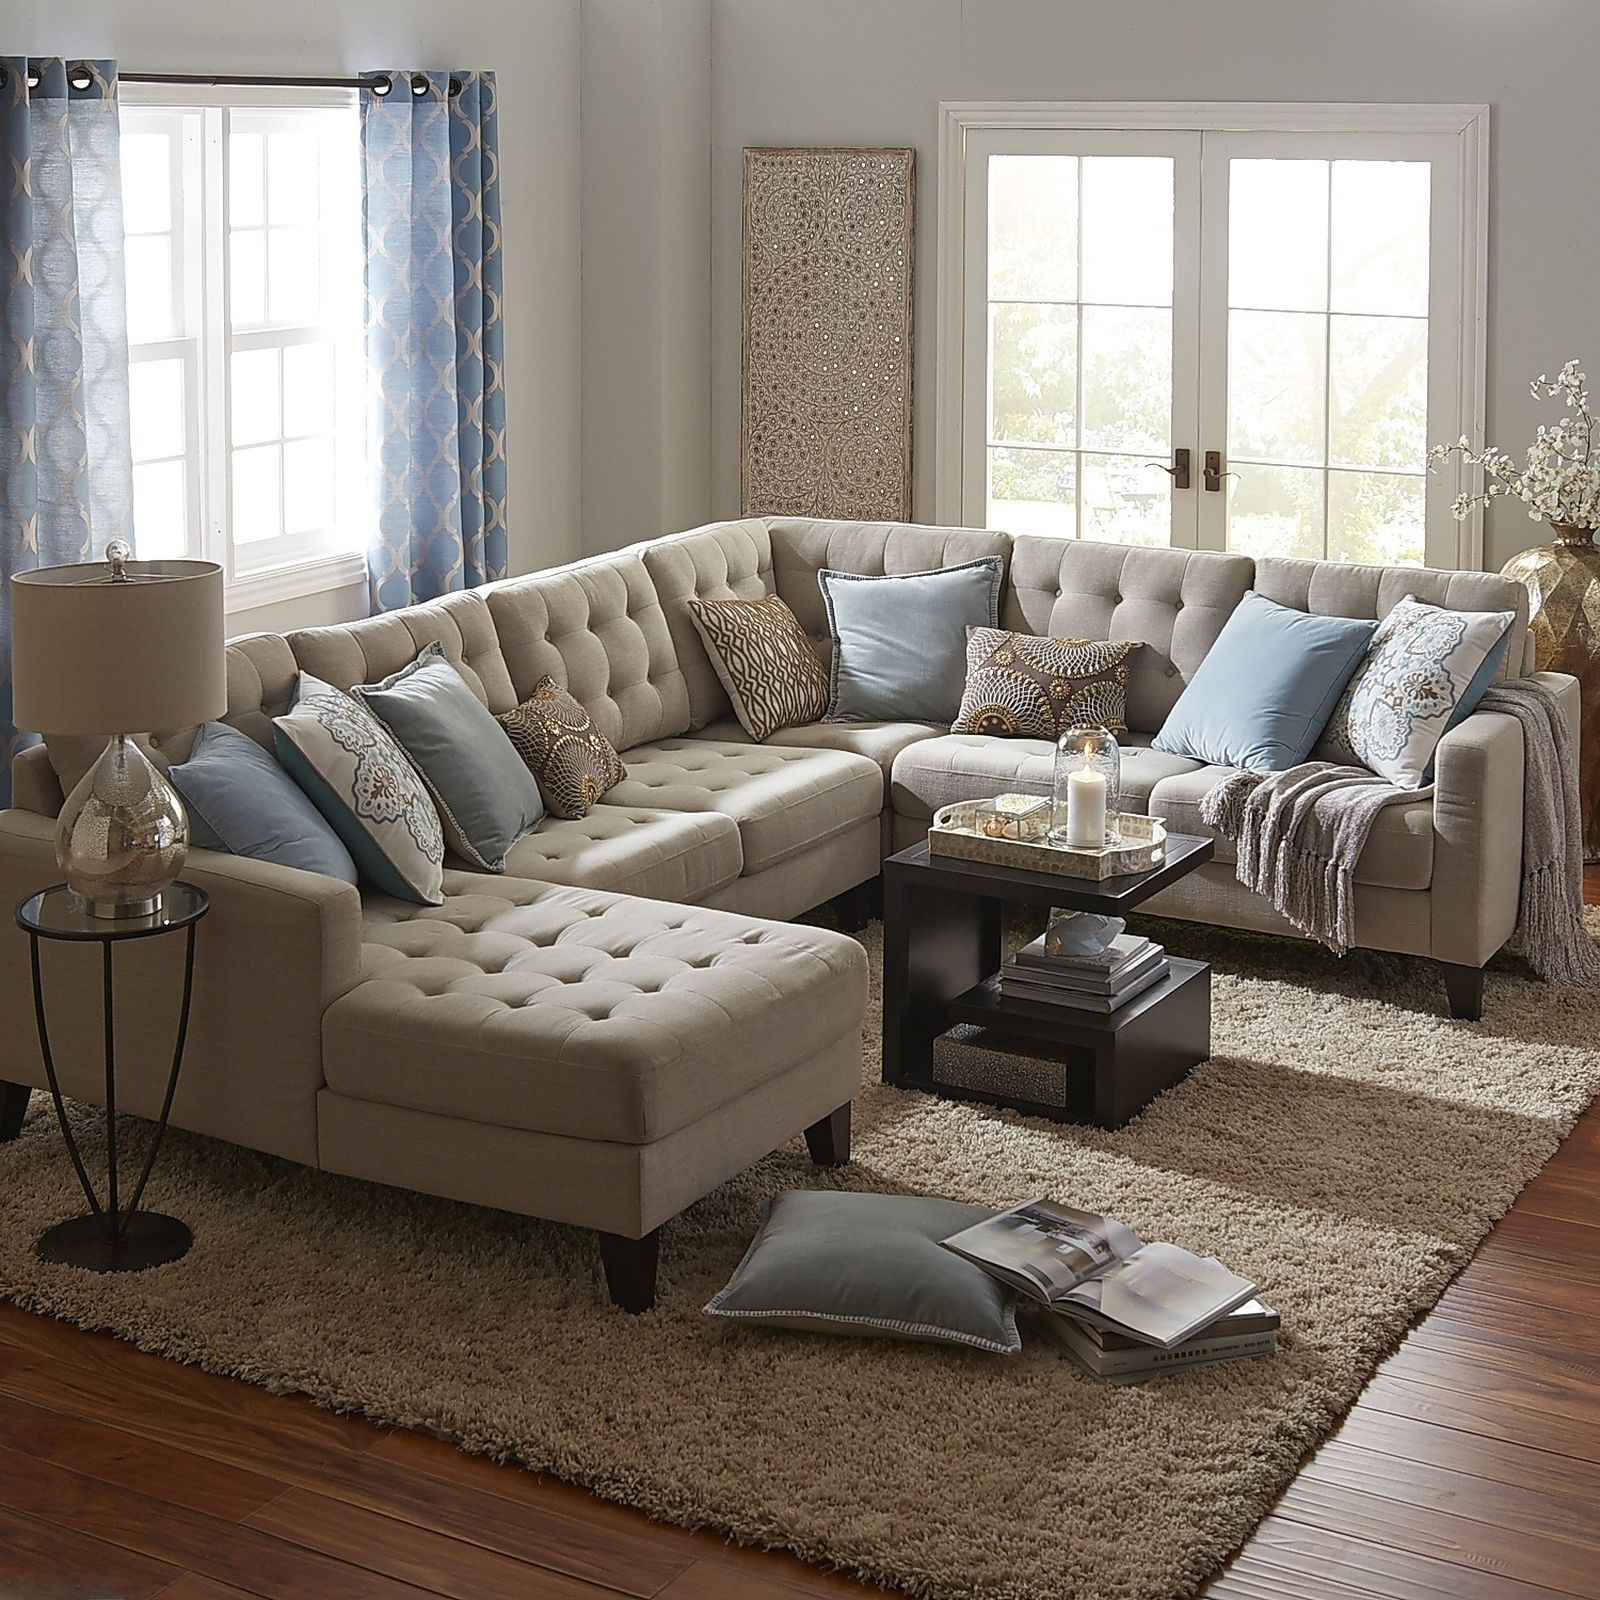 Most Current Sectional Sofas With Epic Sectional Sofas 89 Living Room Sofa Inspiration With (View 14 of 20)